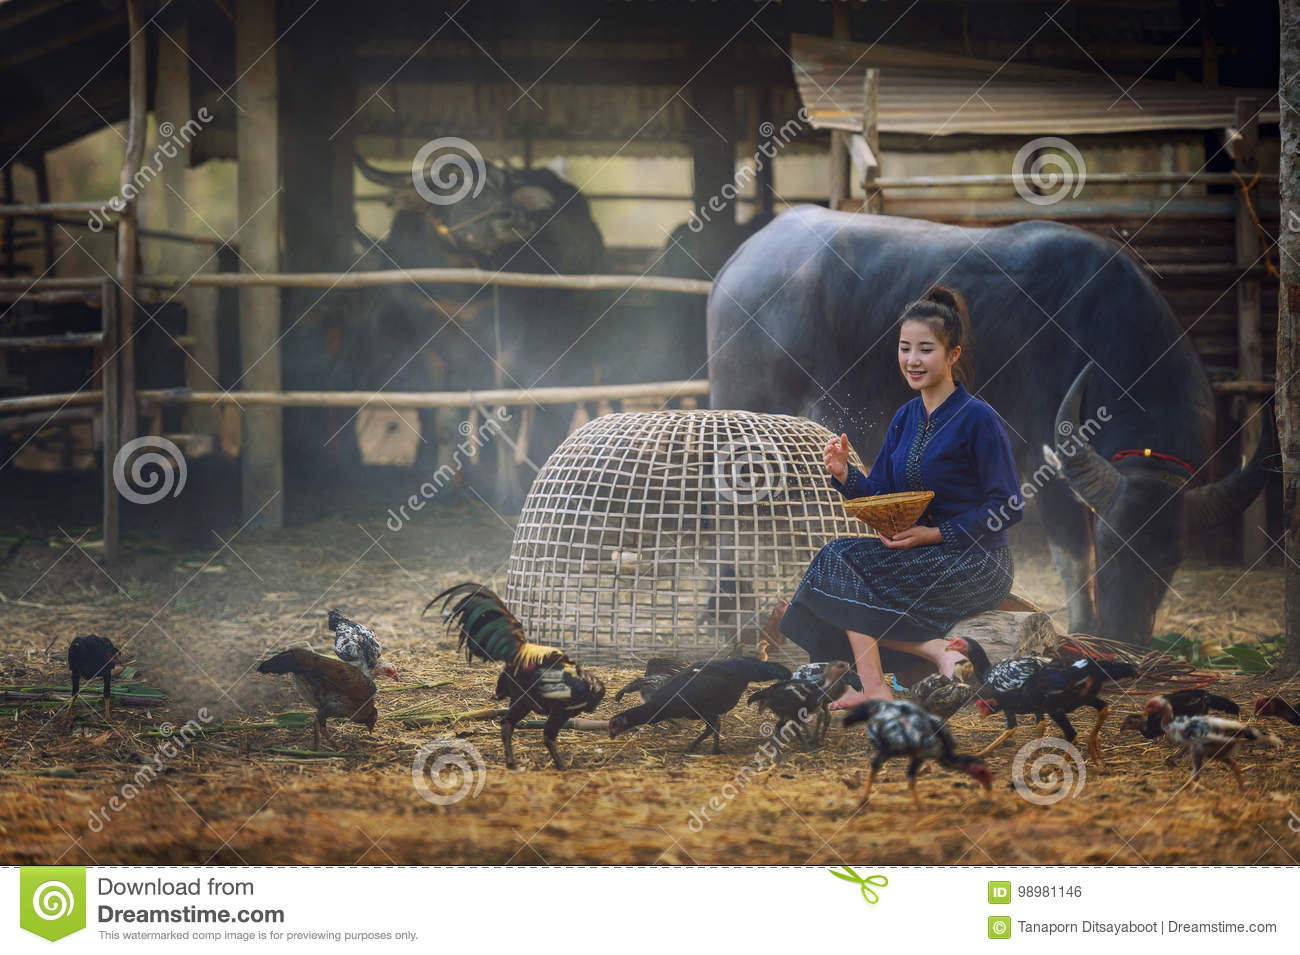 Beautiful Laos woman feeding chickens in countryside on farm background.